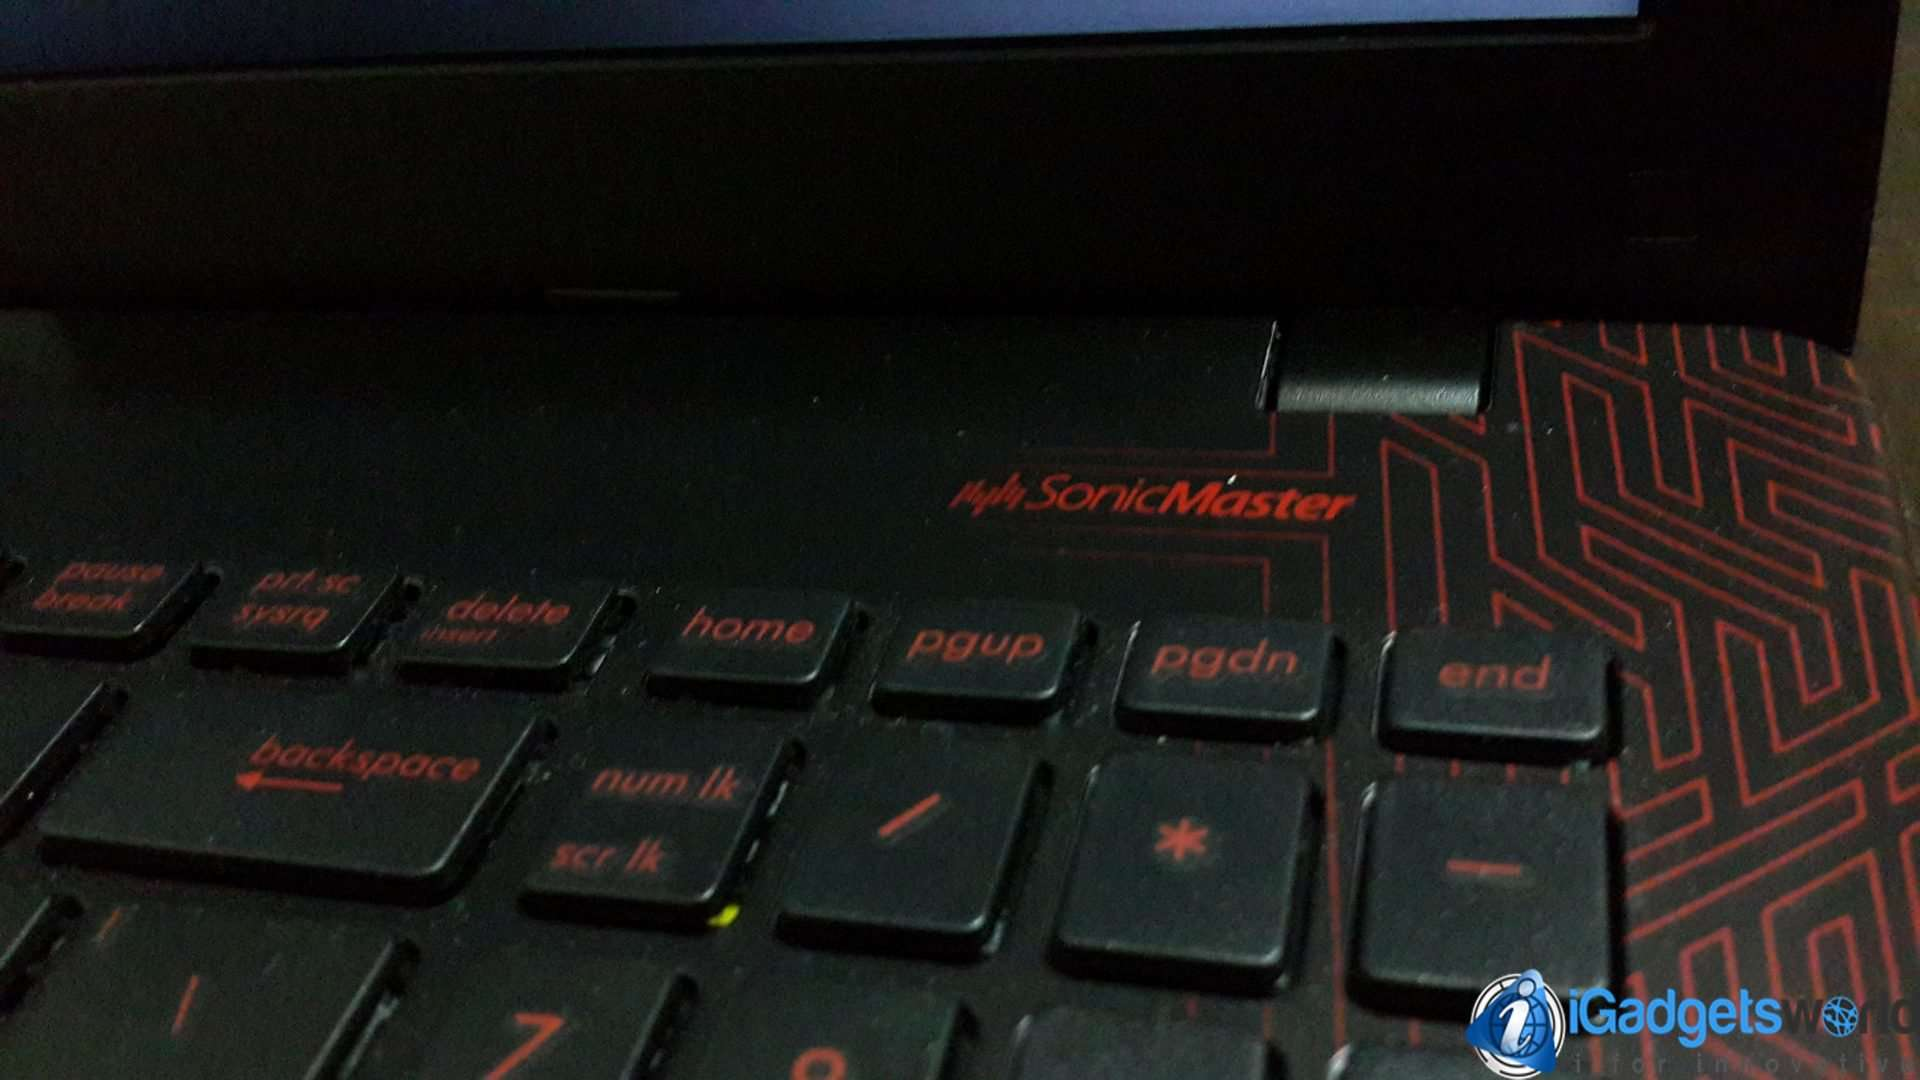 Asus R510J Review: A Slim Gaming Notebook Within the budget! - 5